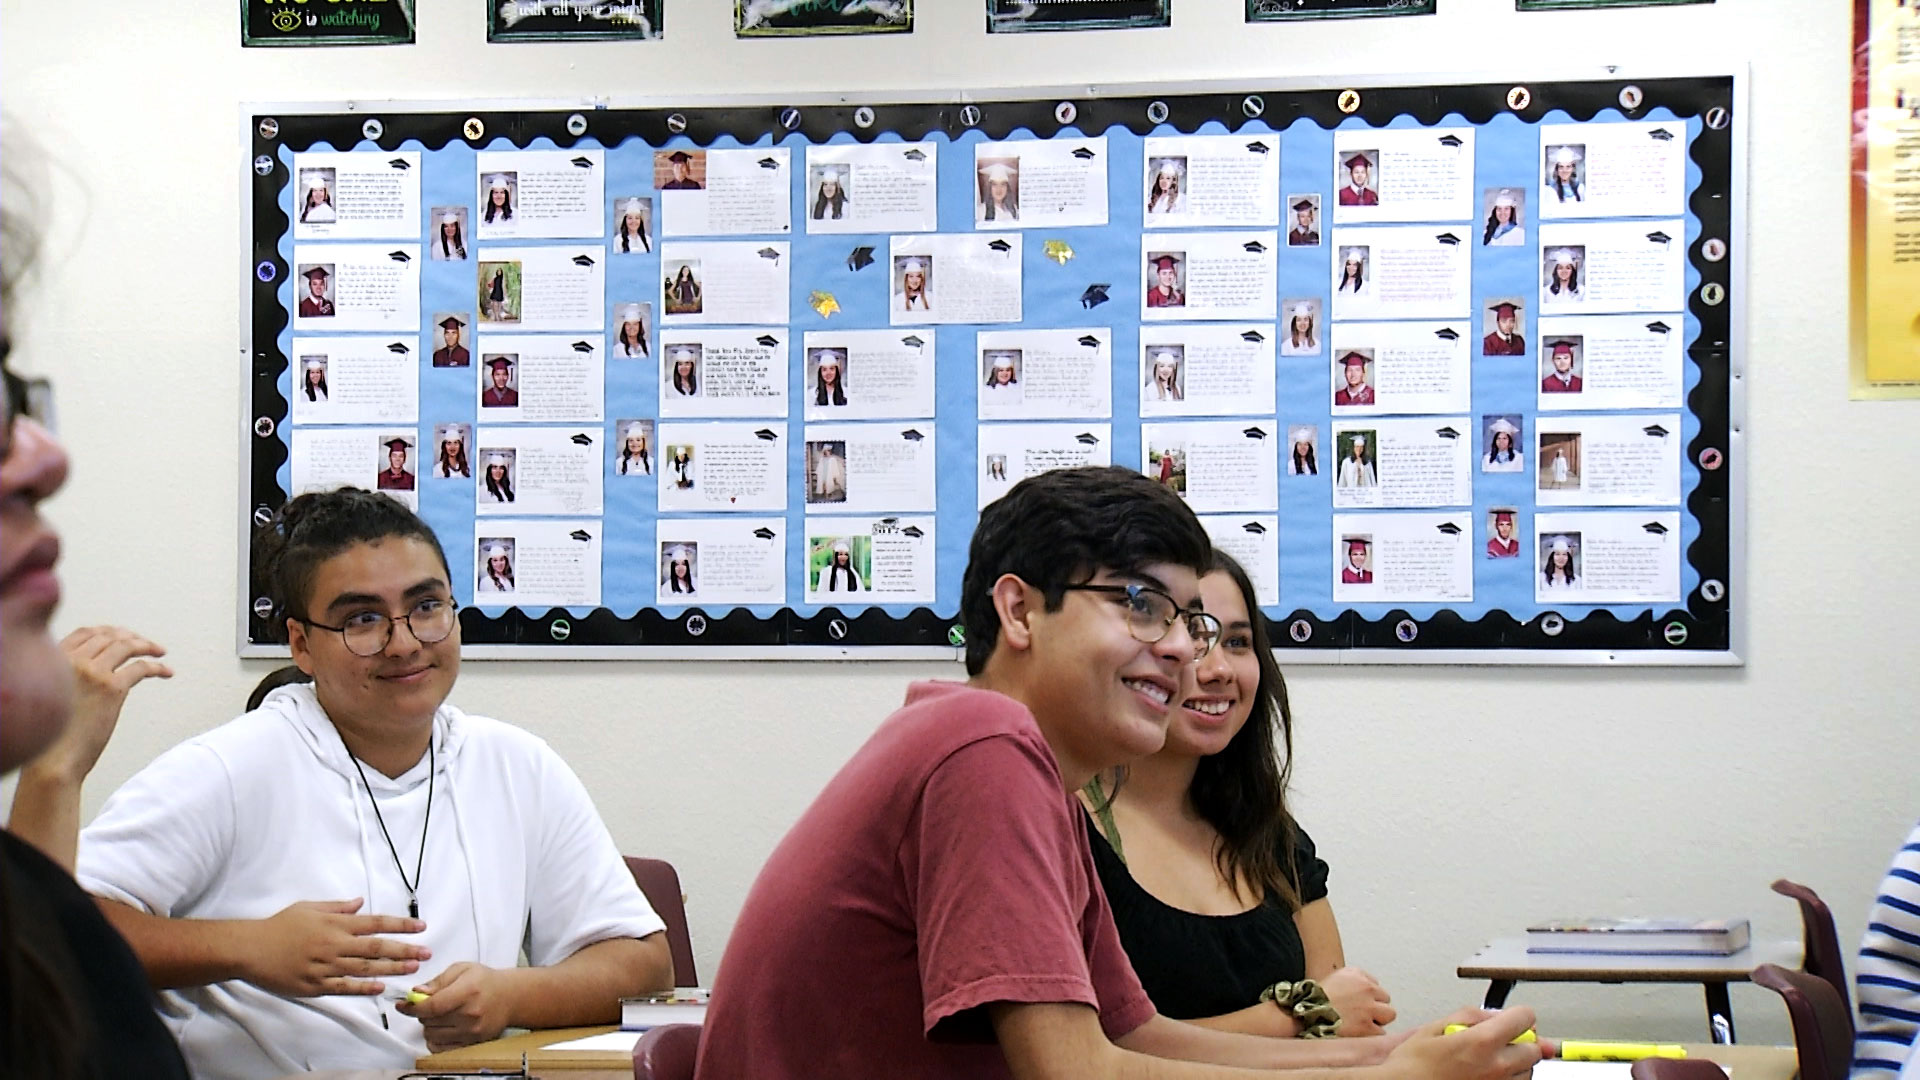 Students listen to instructions in an honors English class at Nogales High School on August 21, 2019.